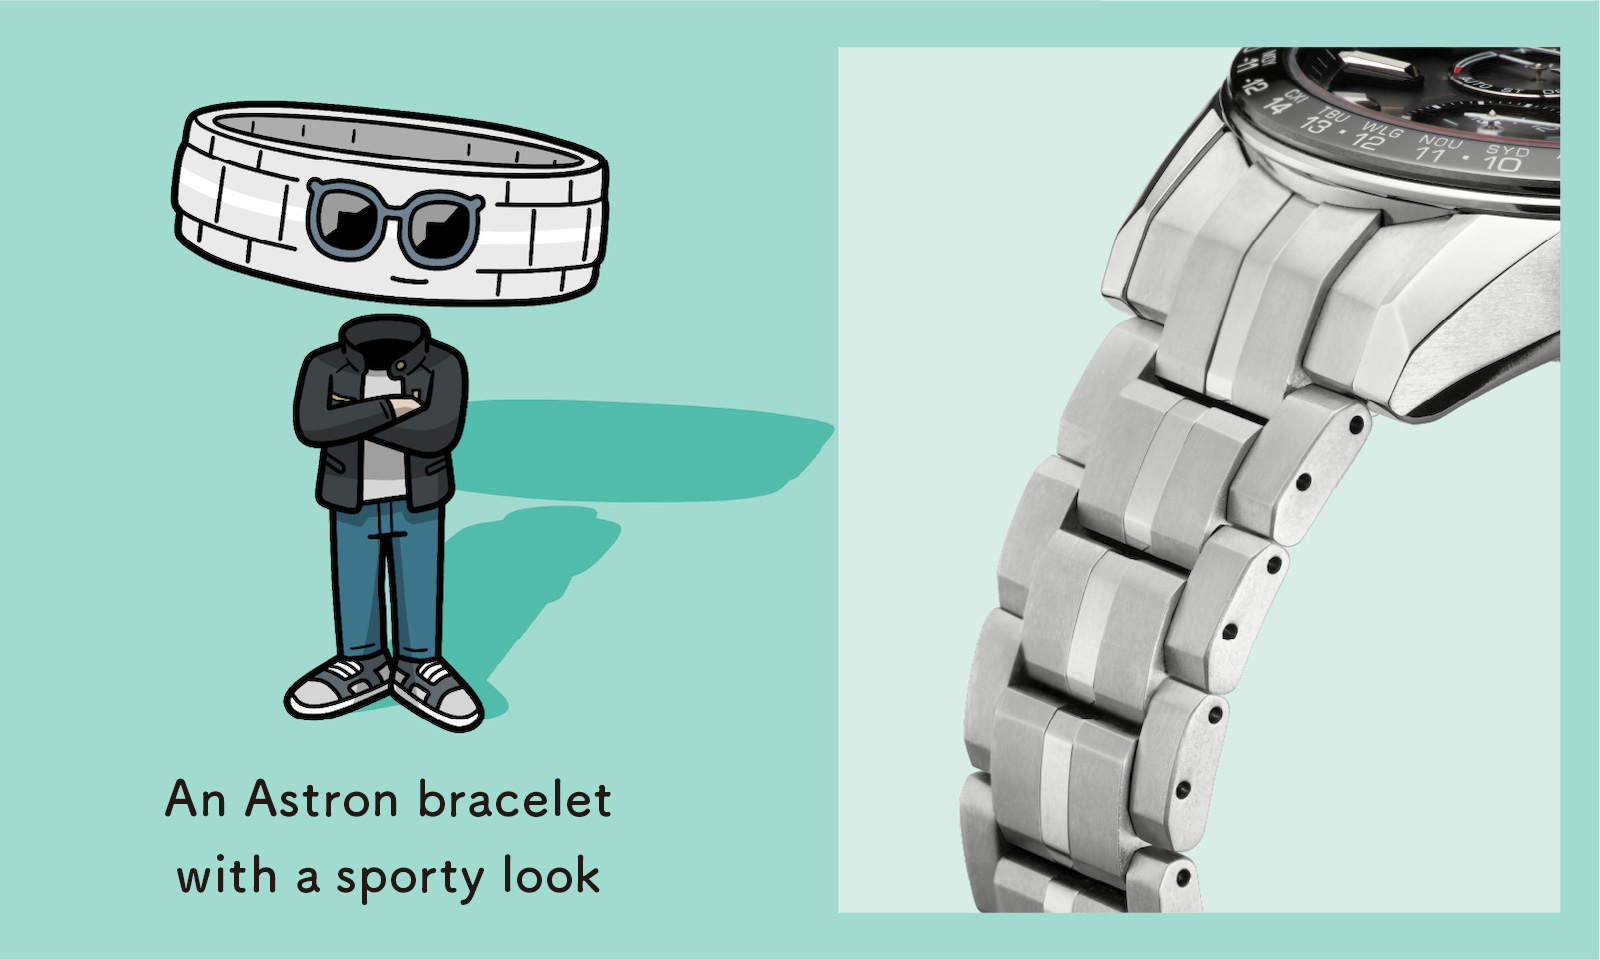 An Astron bracelet with a sporty look (Enlarged photo of the bracelet)